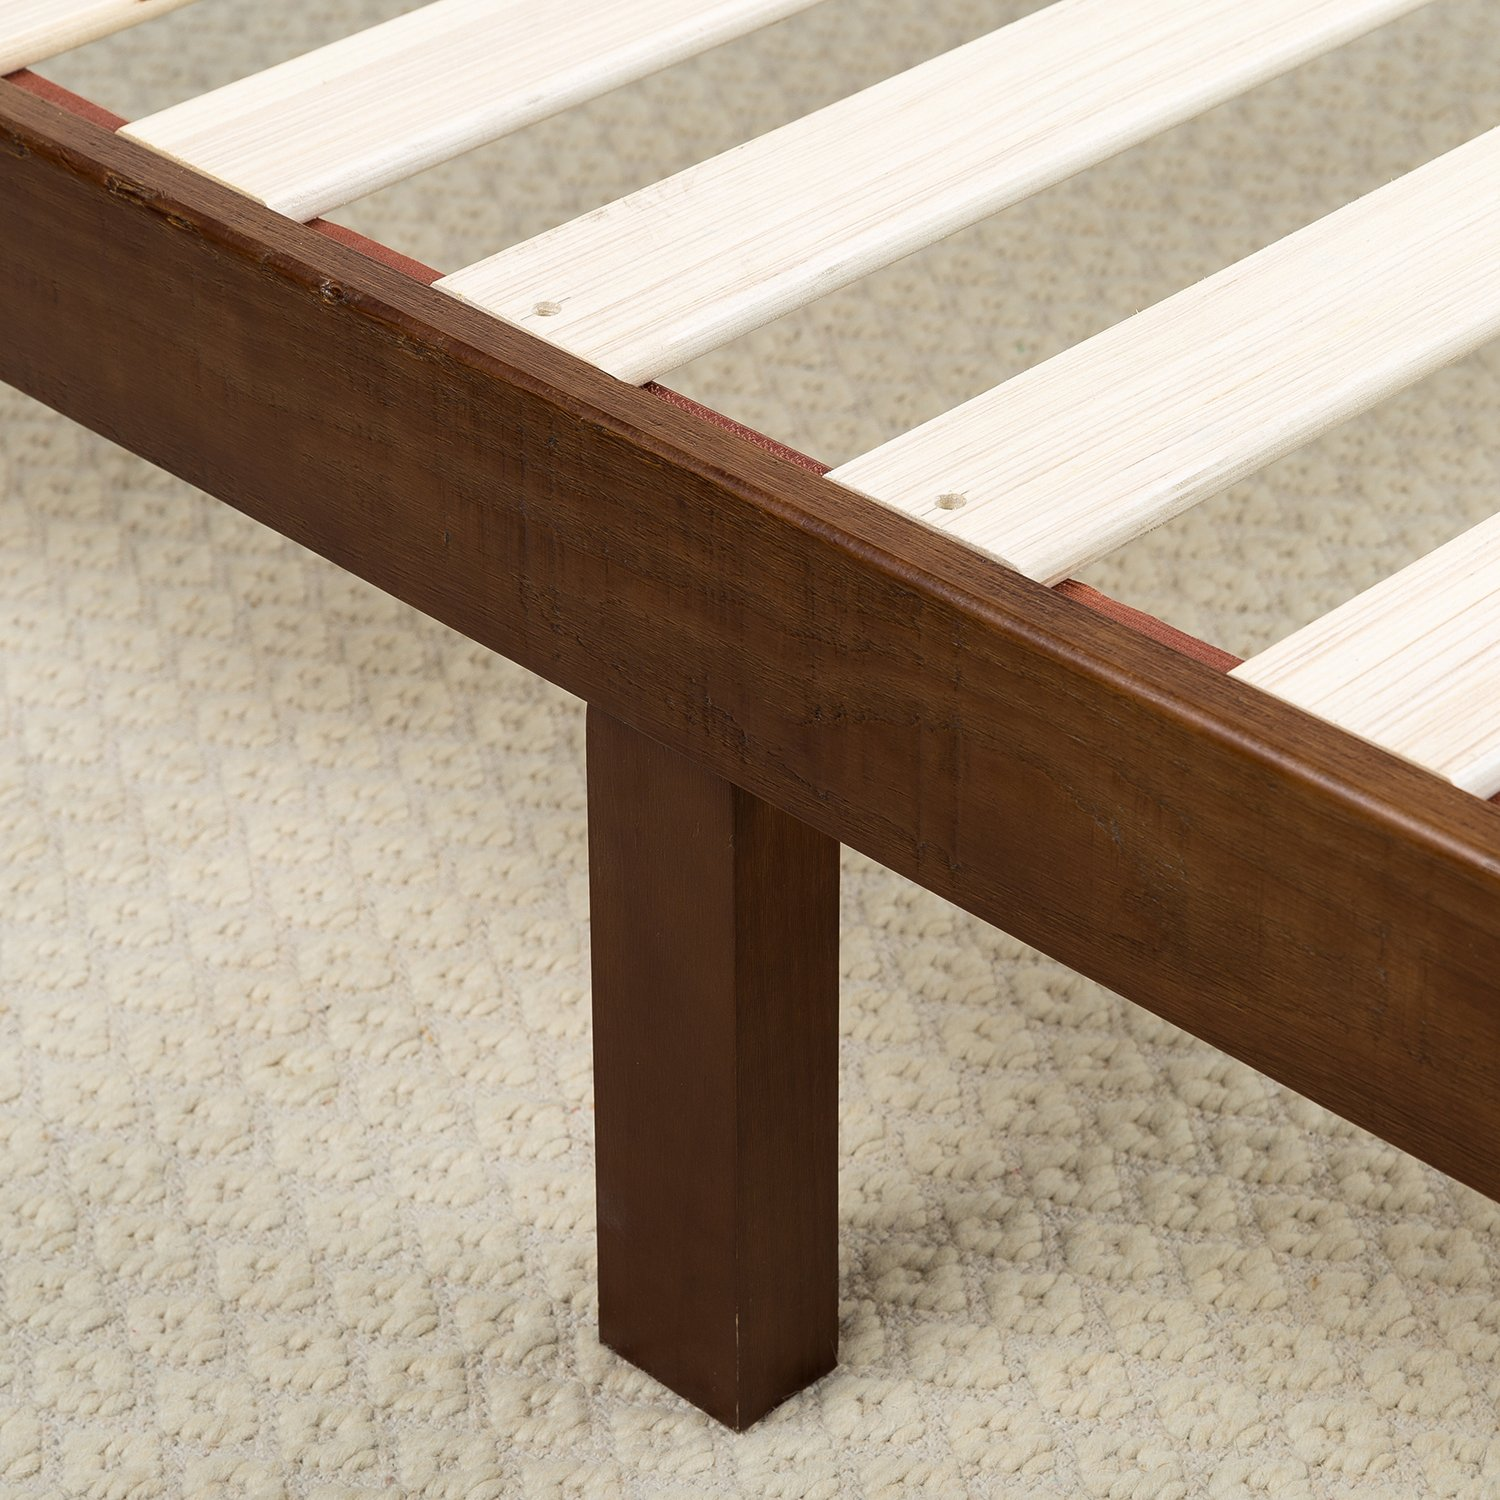 Zinus 12 Inch Wood Platform Bed / No Boxspring Needed / Wood Slat Support / Antique Espresso Finish, Twin by Zinus (Image #3)